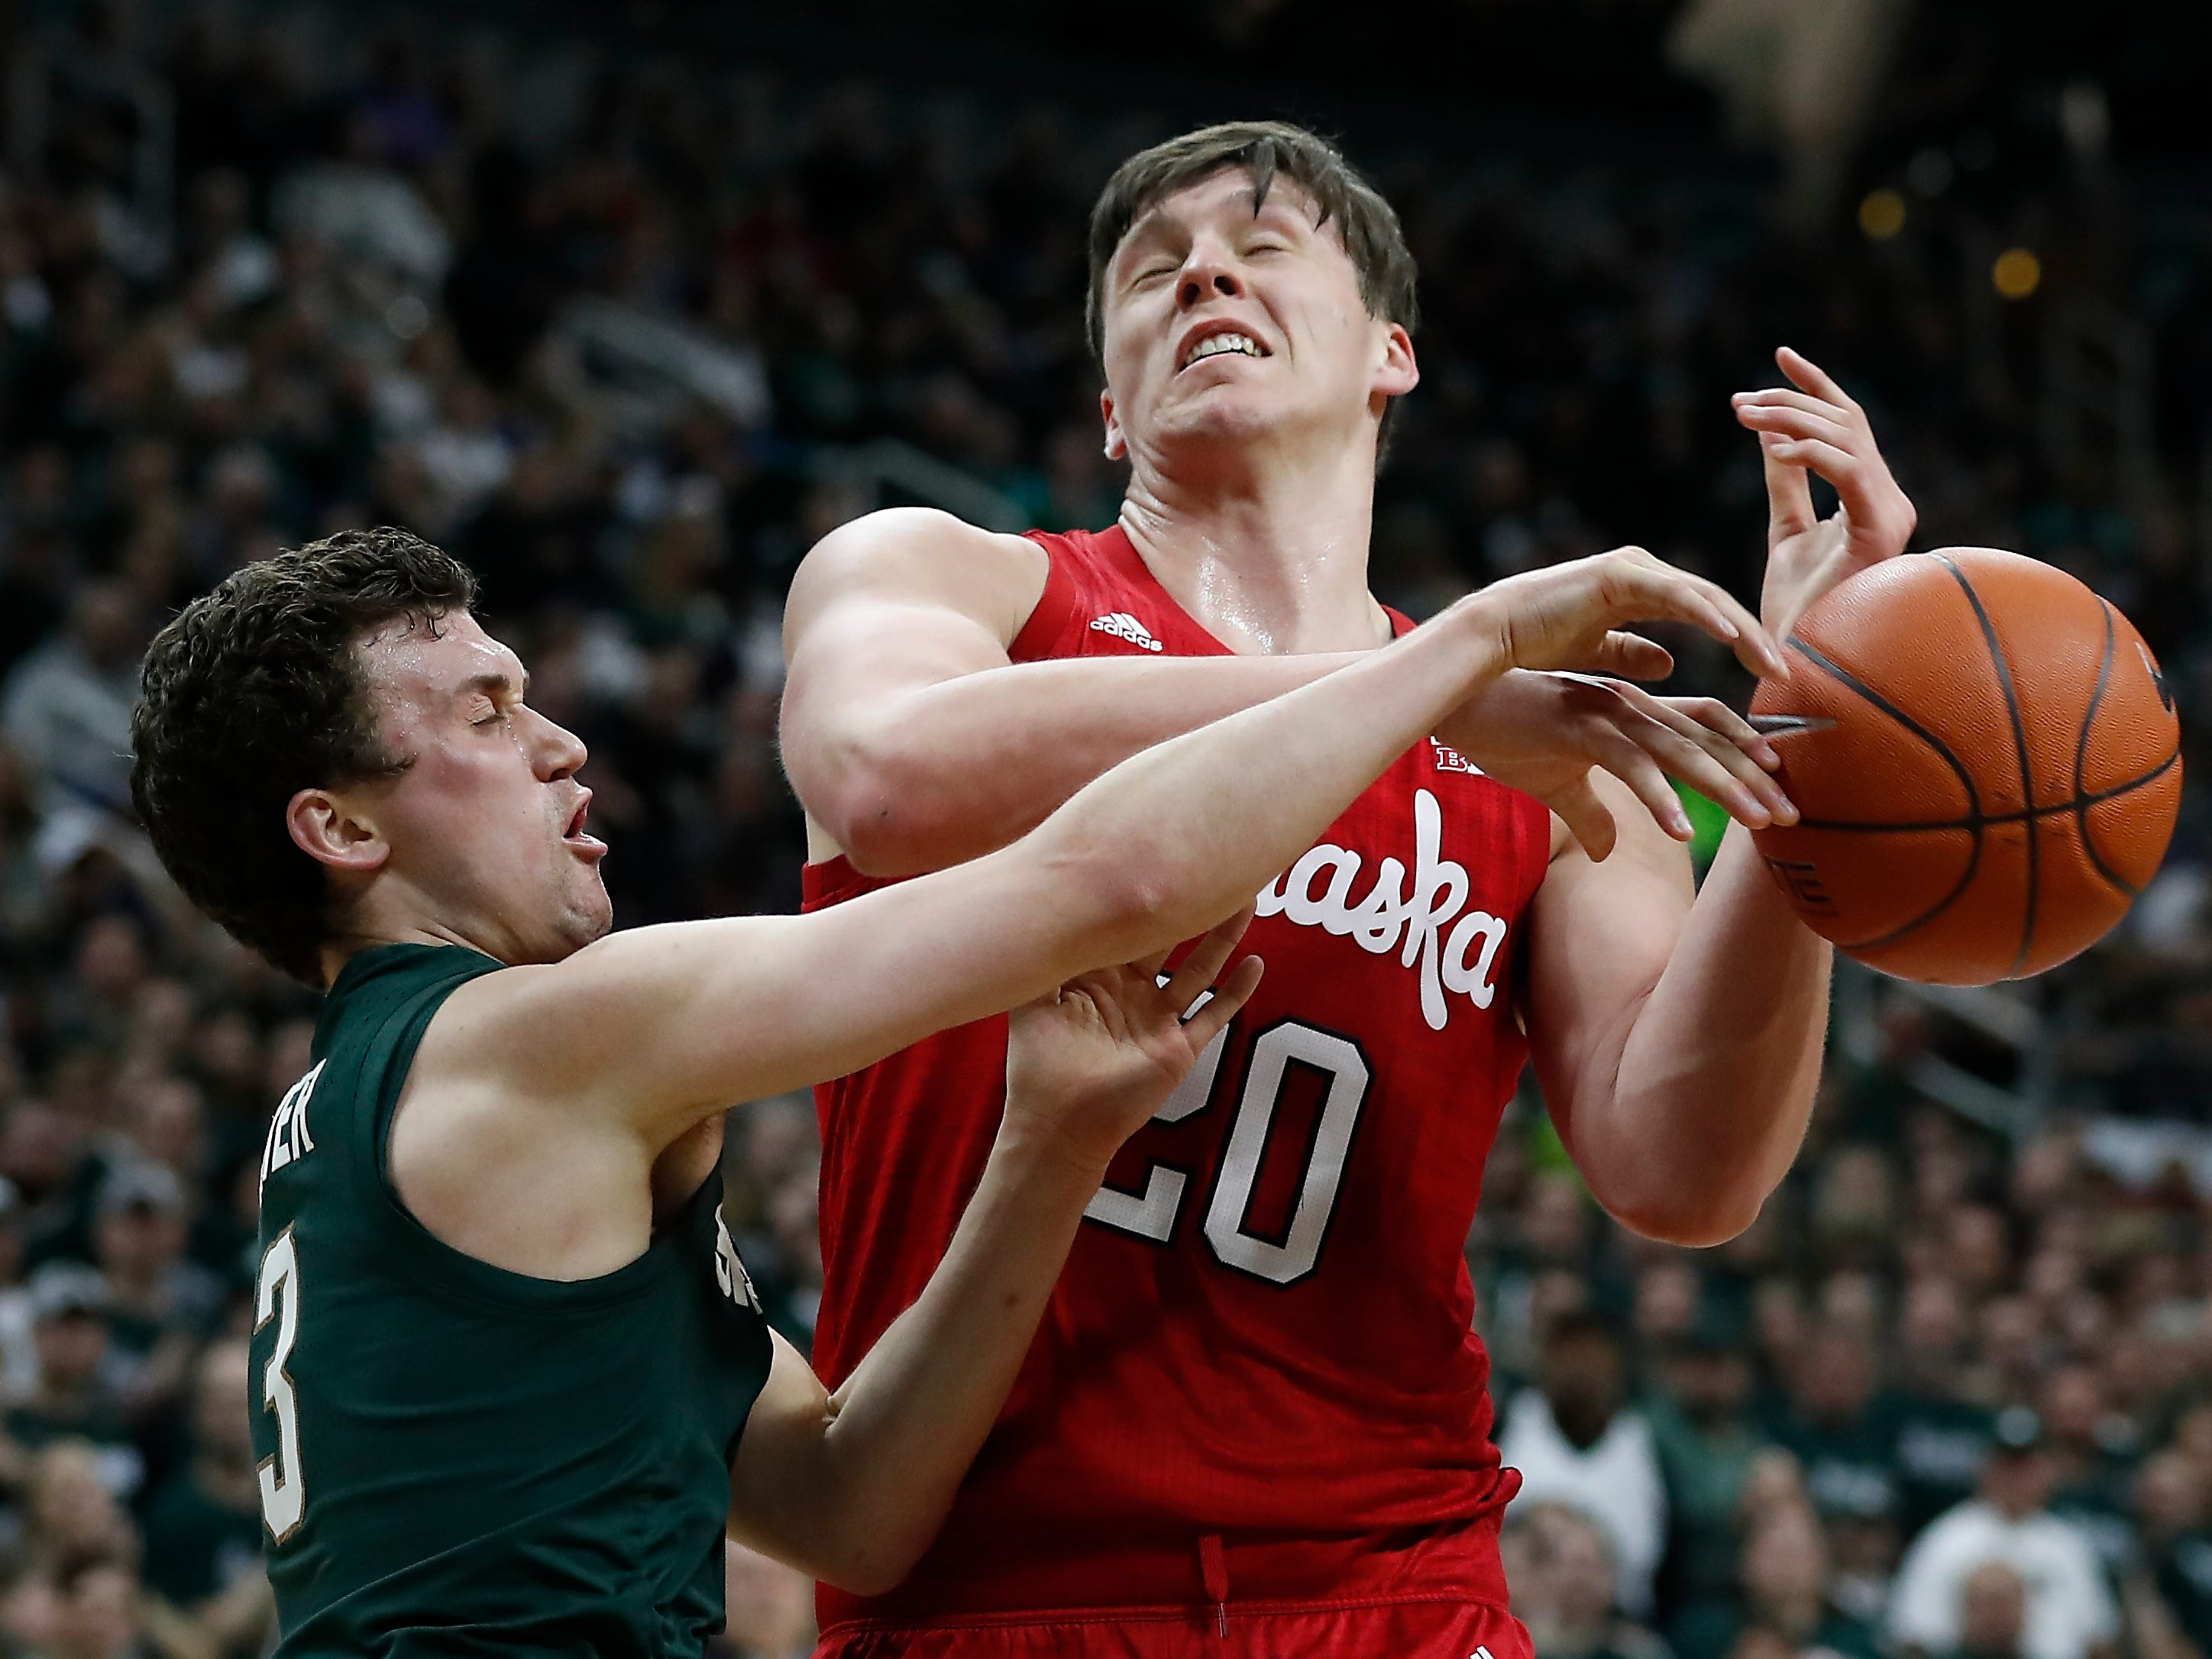 Michigan State guard Foster Loyer, left, knocks the ball away from Nebraska forward Tanner Borchardt, right, during the first half of an NCAA college basketball game, Tuesday, March 5, 2019, in East Lansing, Mich.